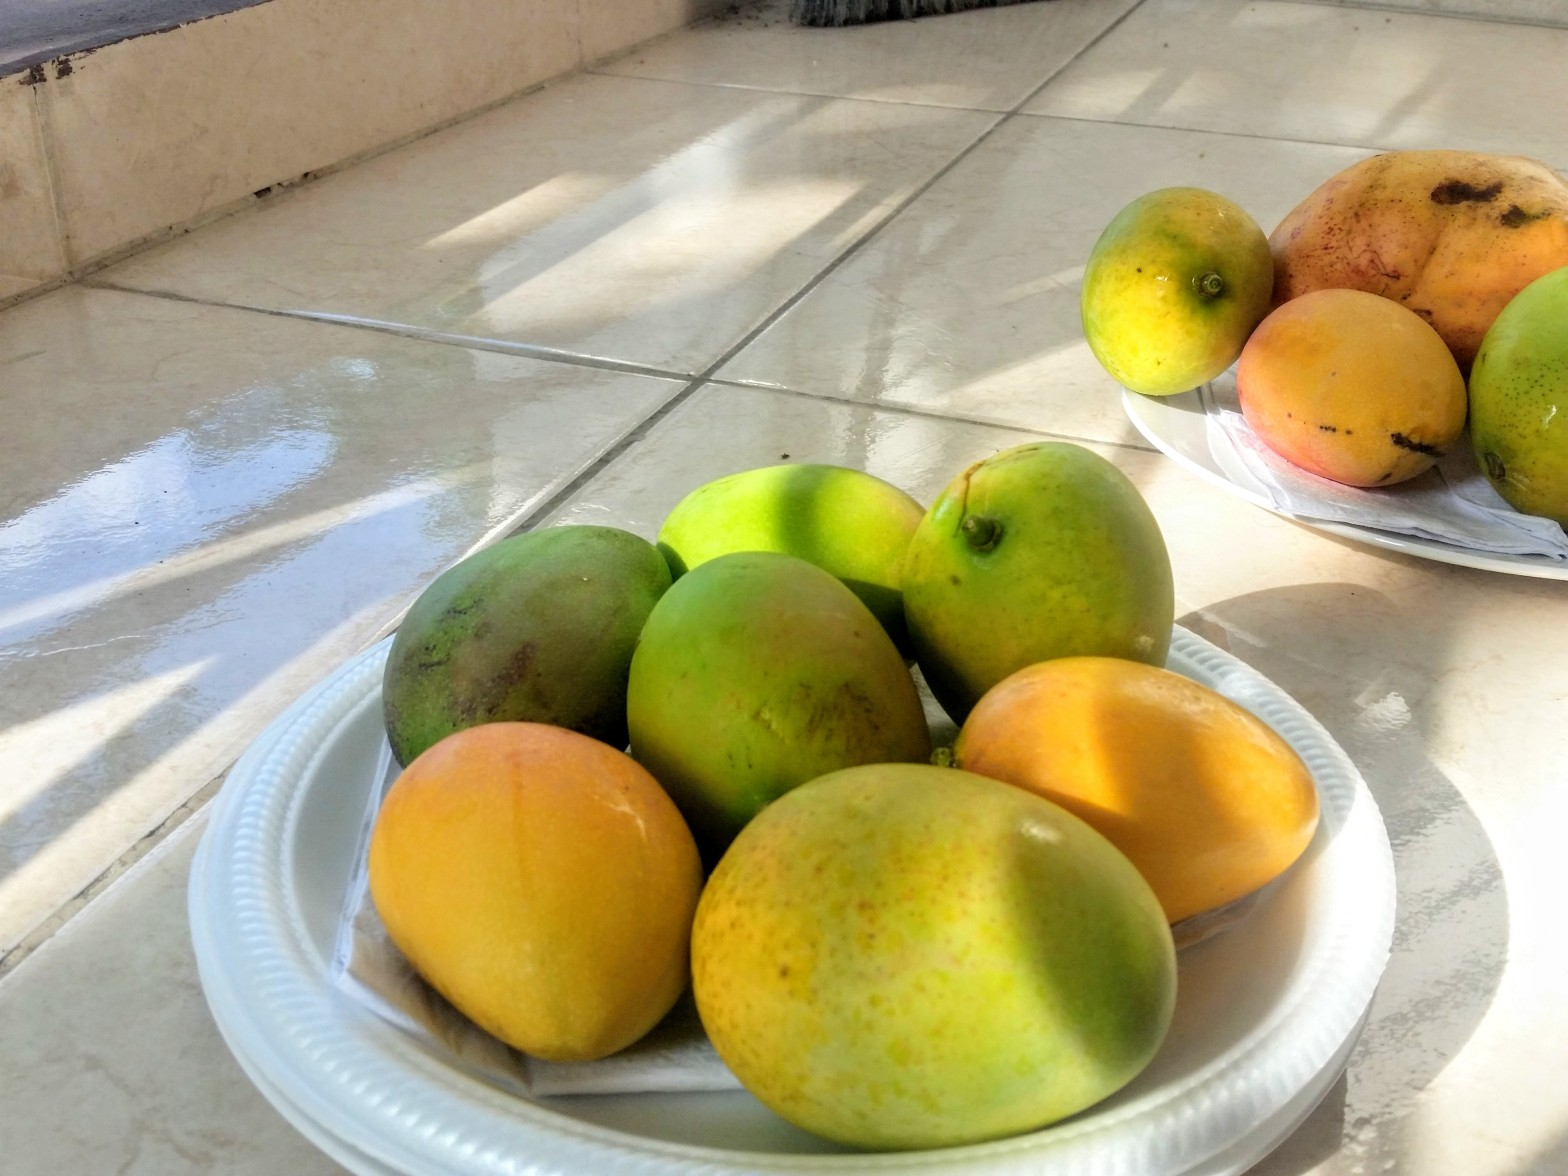 Few green-yellow mangoes in a dish